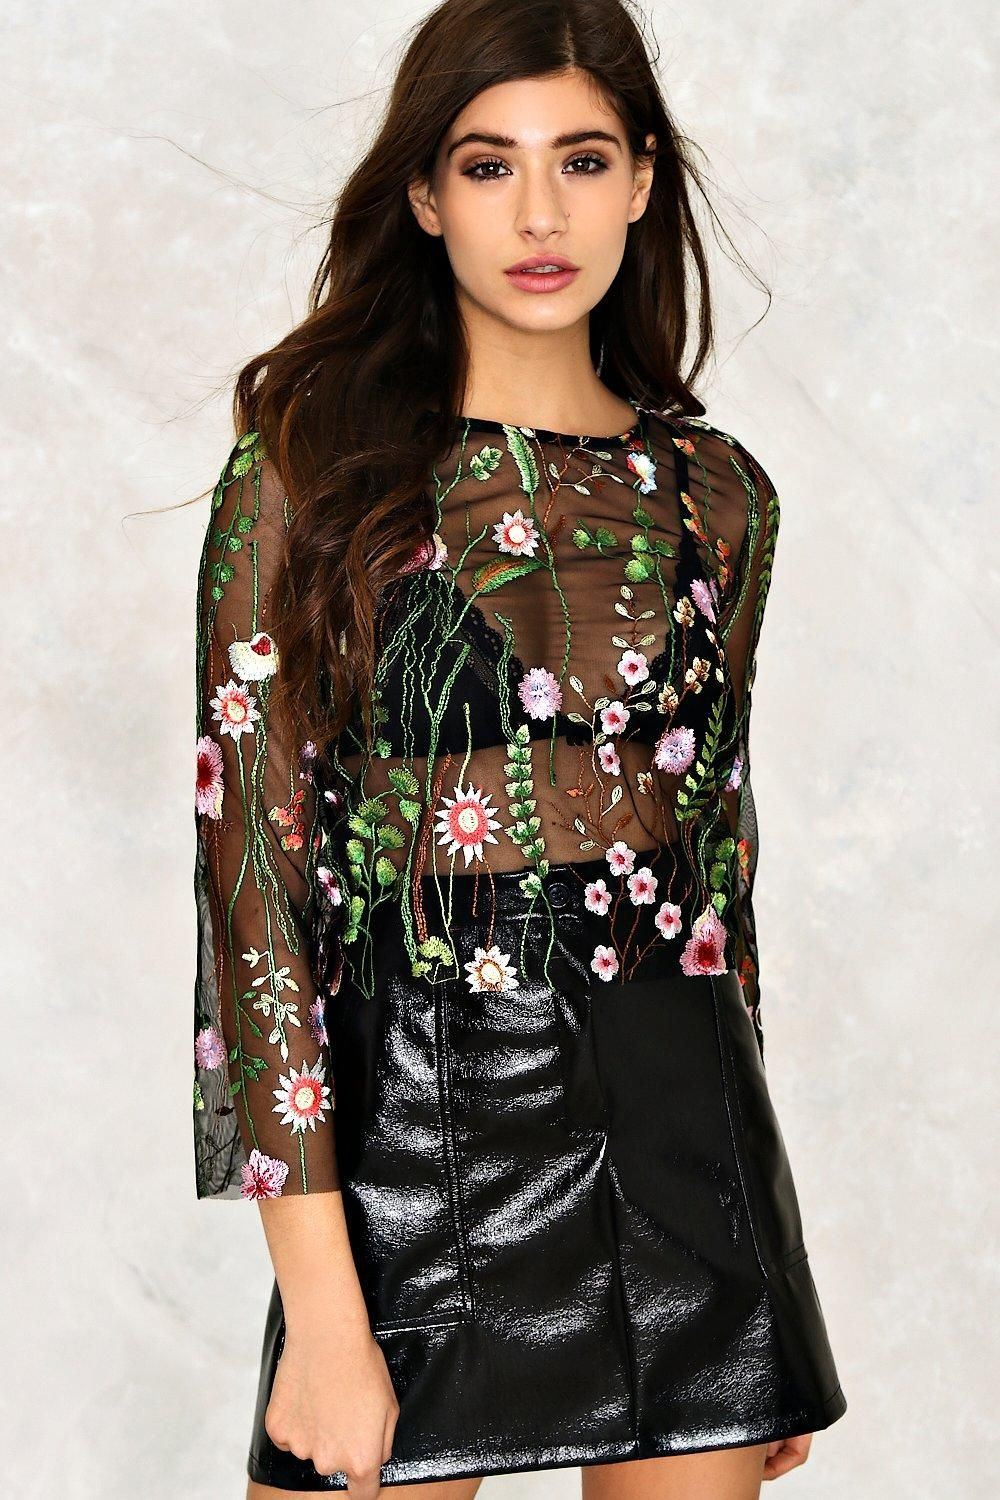 Alice + Olivia dupe - Flirty floral. Breathe extra life into your favorite skirts and denims with our Elsa Embroidered Mesh Sheer Top, a pretty design featuring cropped sleeves, a crew neck, sheer mesh construction and stylish floral embroidery.